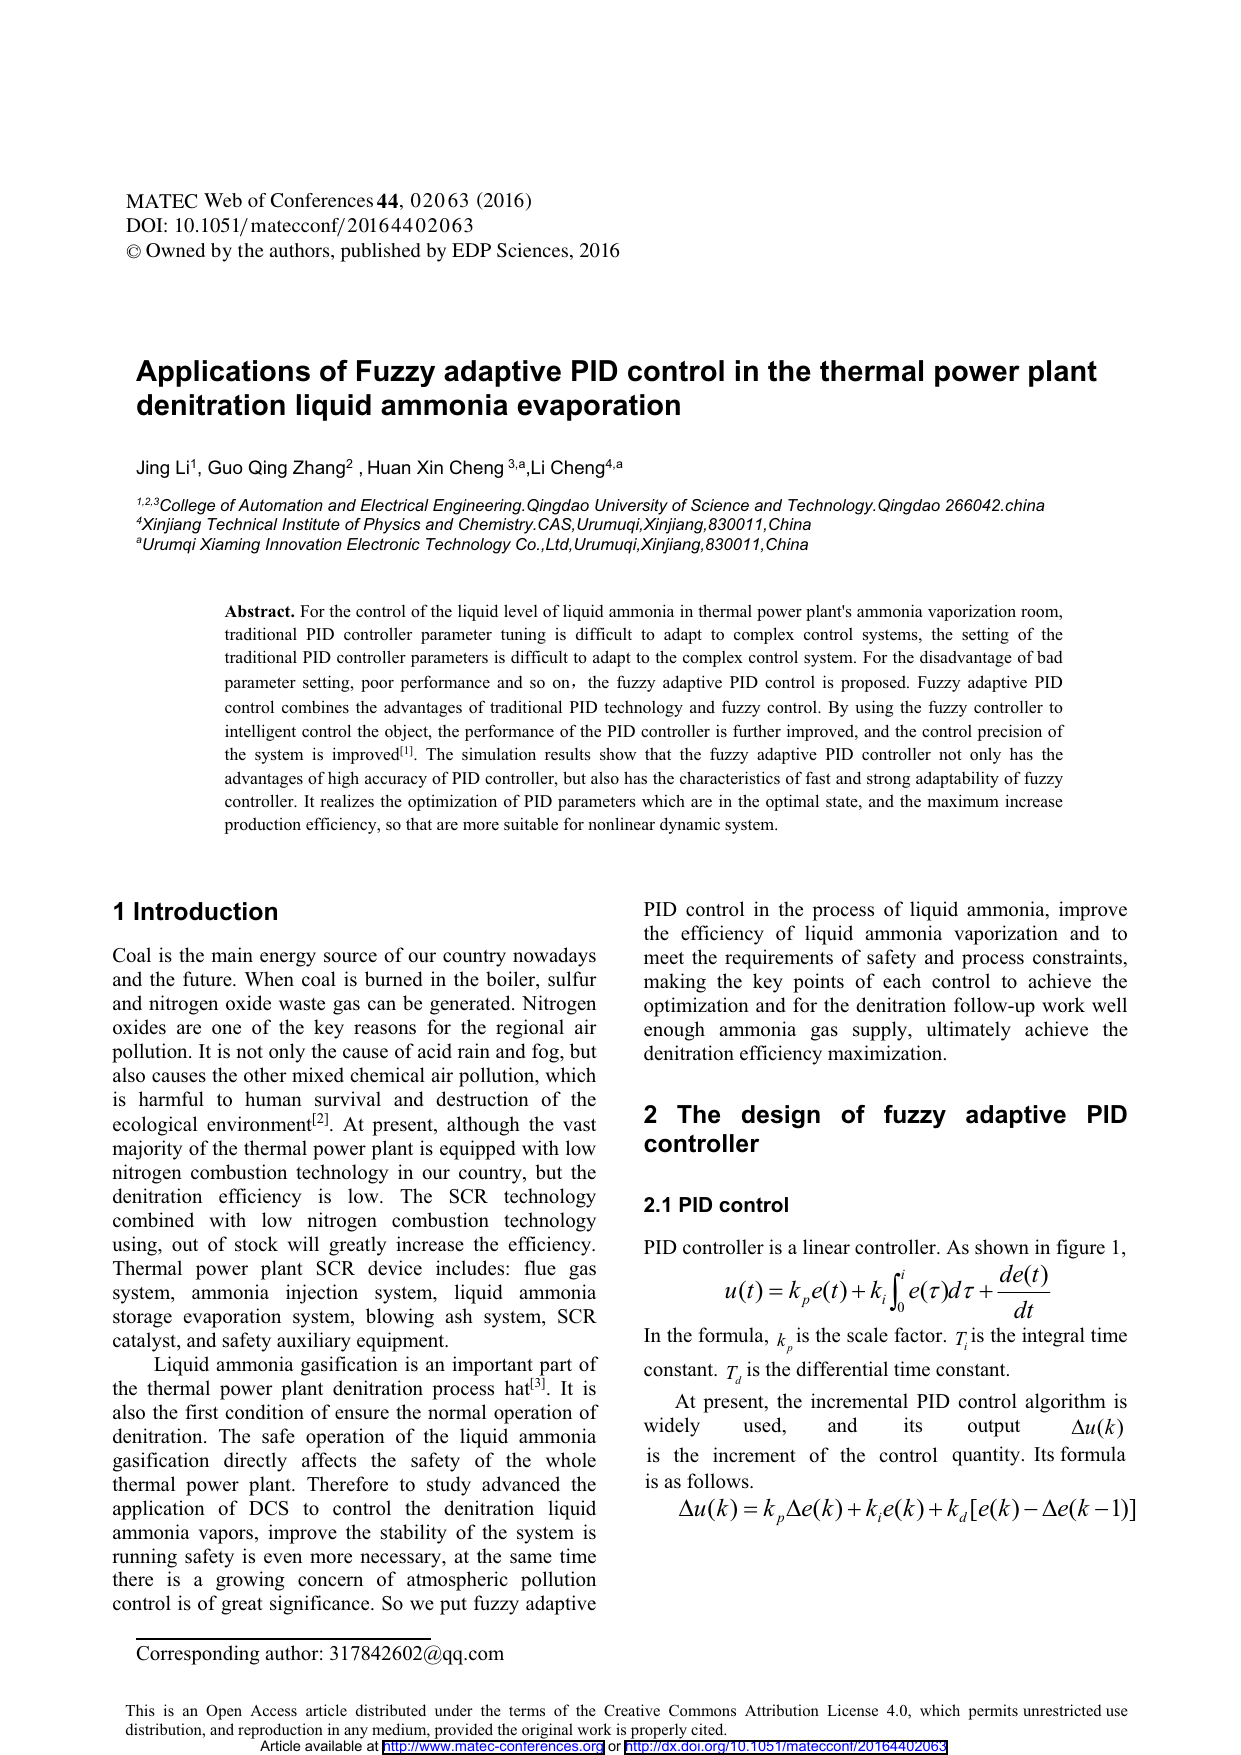 Applications of Fuzzy adaptive PID control in the thermal power